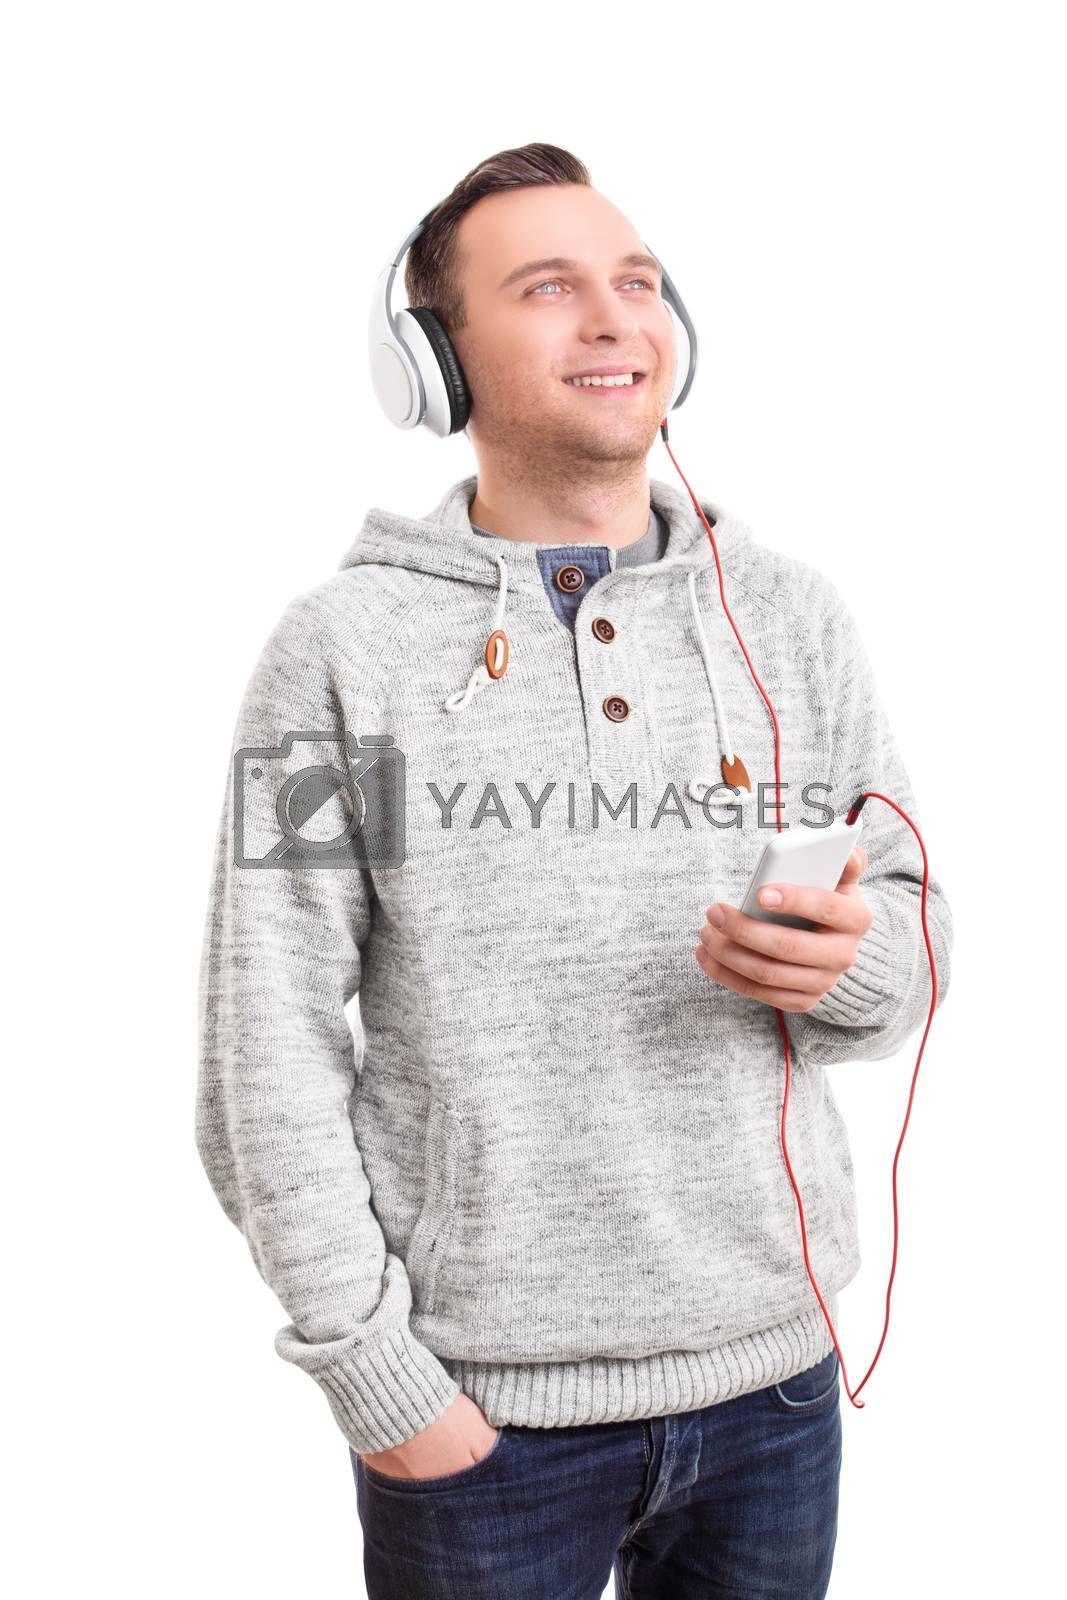 Music concept. Handsome casual young man with white headphones listening to music on his phone, enjoying and smiling, isolated on white background. Young man listening to music on his headphones.